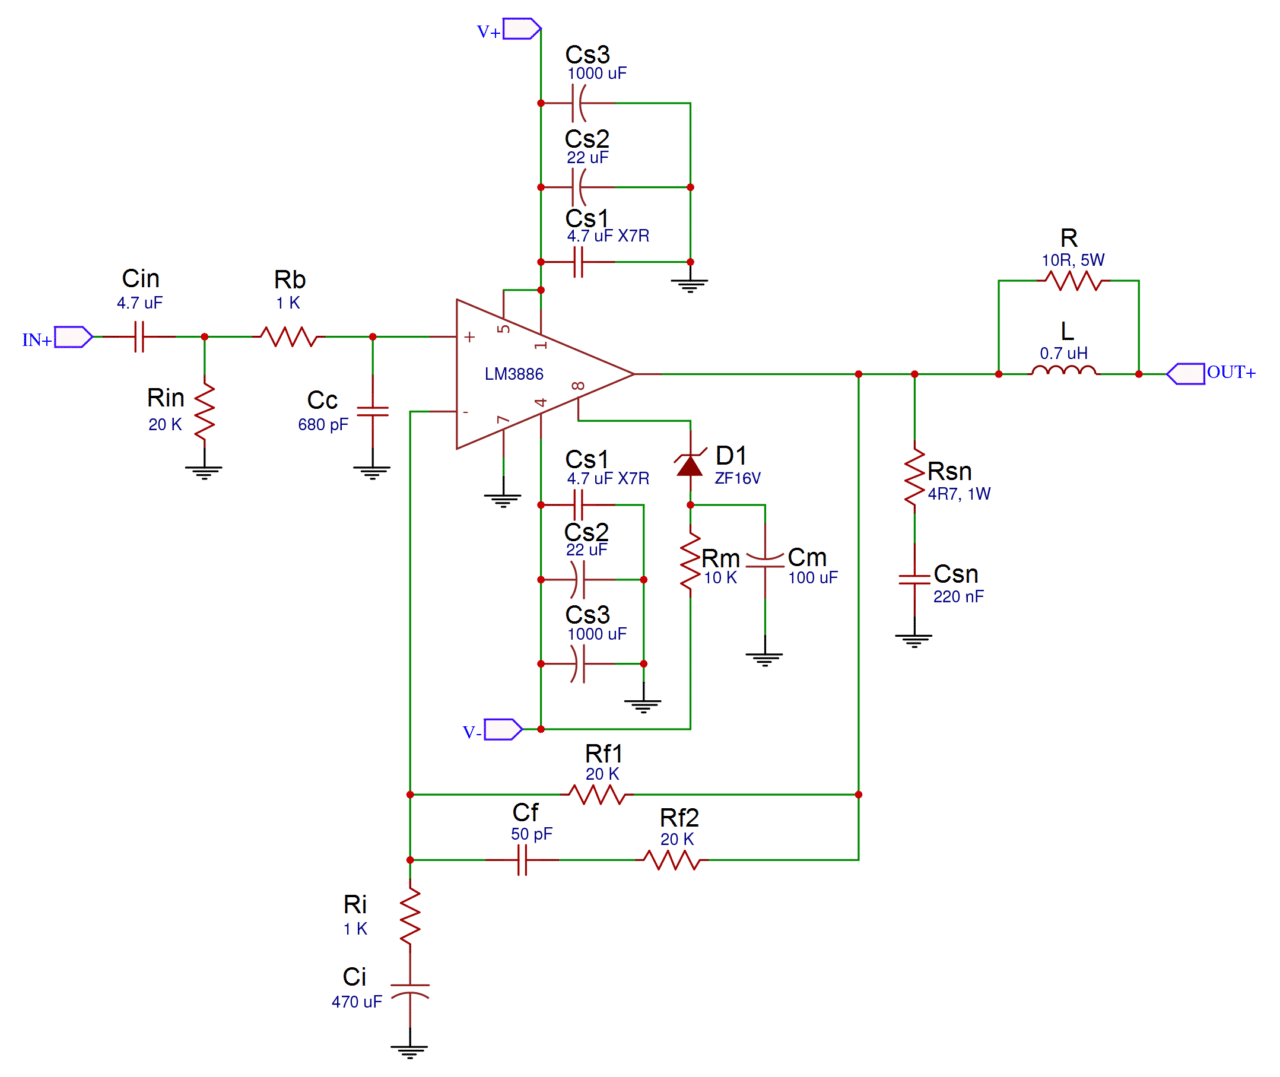 A Complete Guide To Design And Build Hi Fi Lm3886 Amplifier Wiring Diagram Likewise Speaker Wire Banana Plugs On 2 Speakers Ill Be Using The Schematic Below Its Basically Same As One In Datasheet But With Optional Stability Components Included